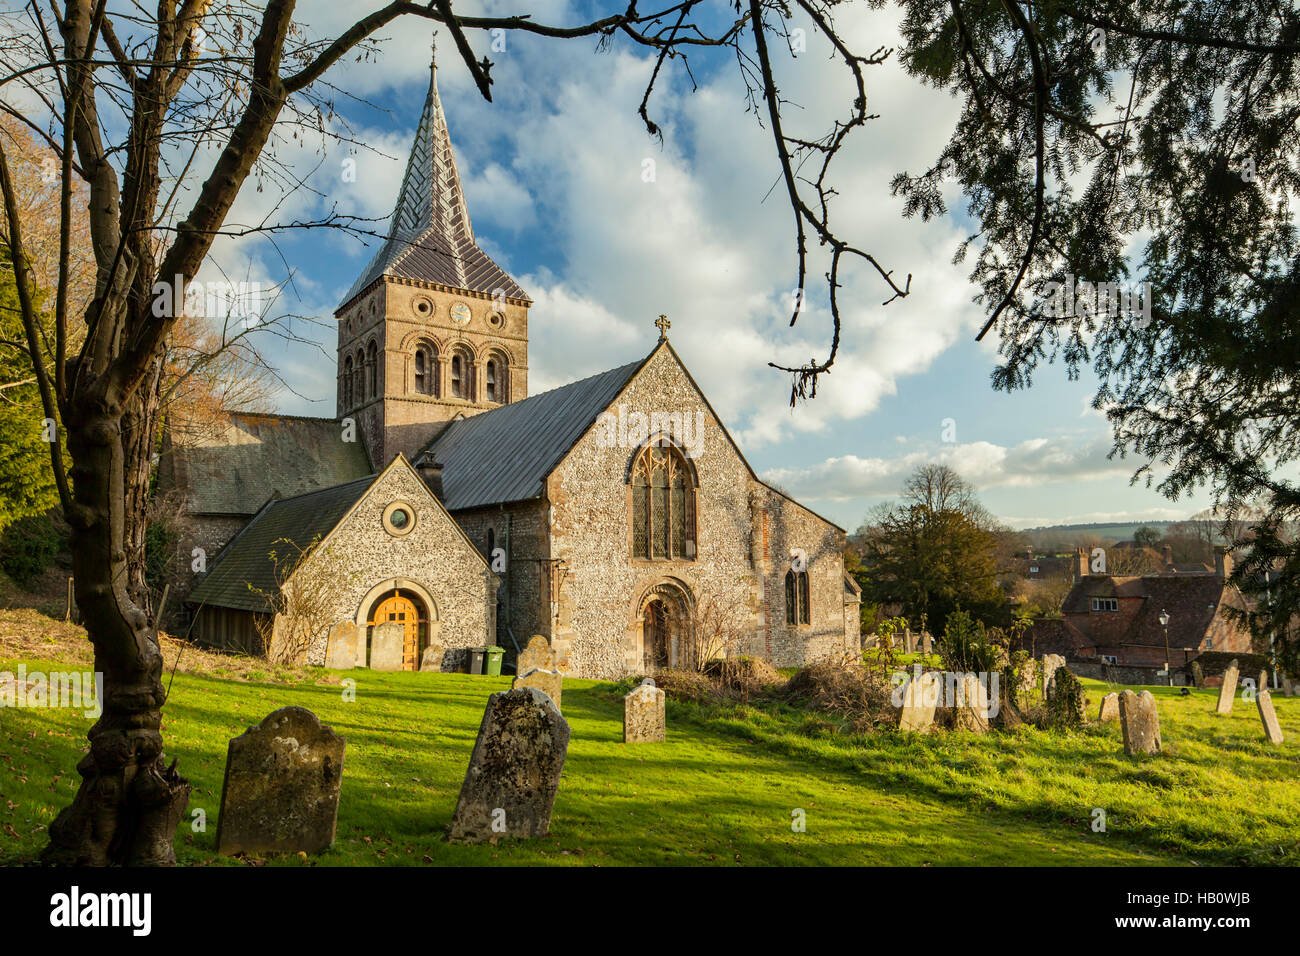 Autumn at All Saints church in East Meon, Hampshire, England. South Downs National Park. - Stock Image